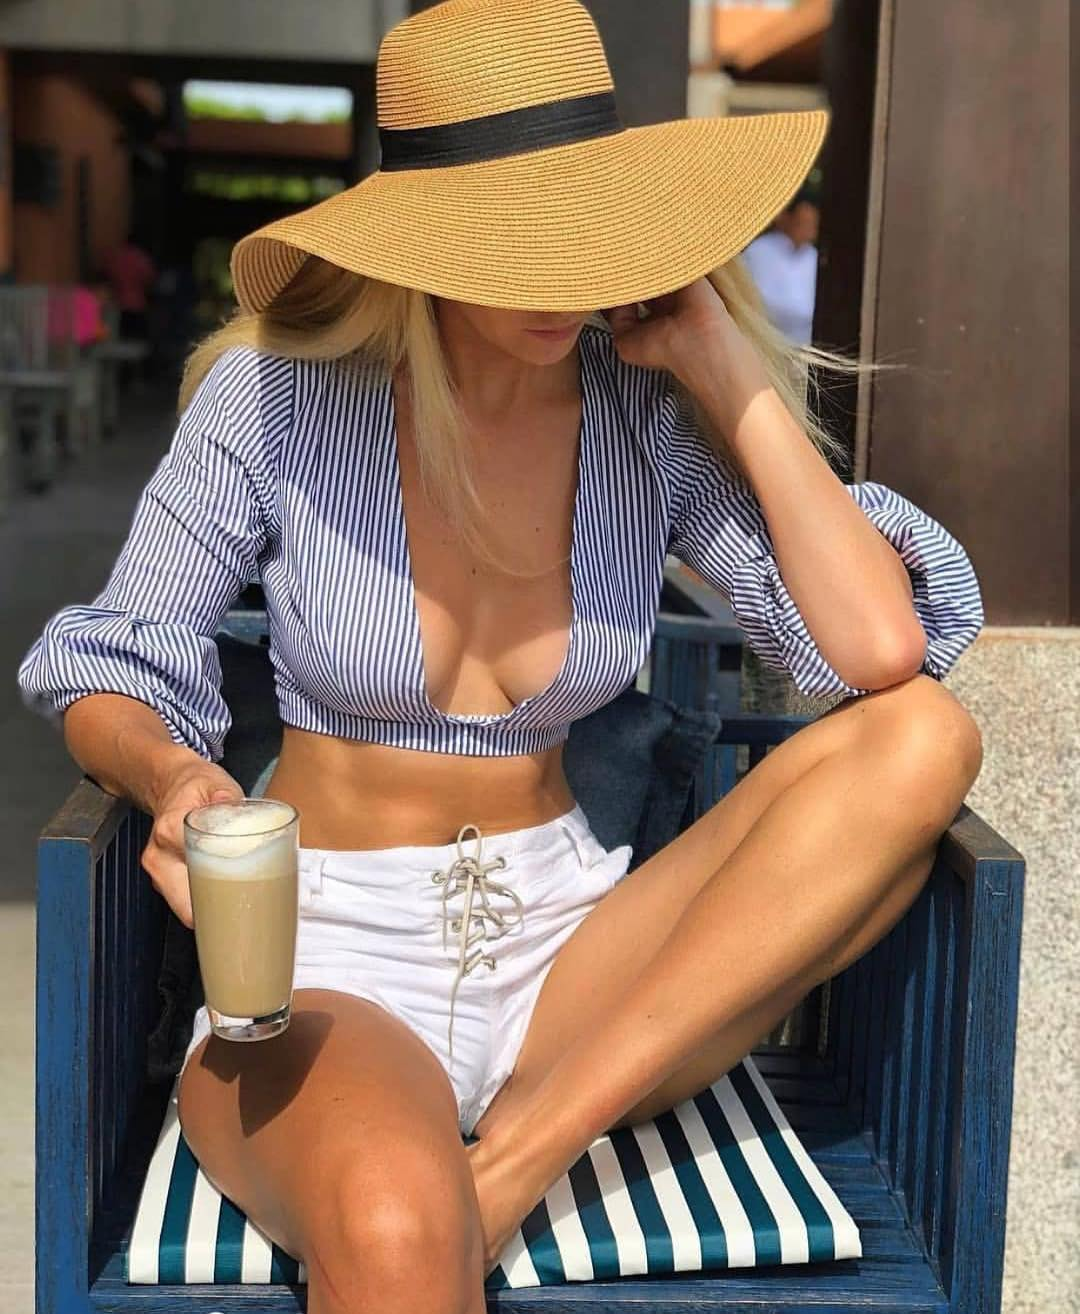 Crop Blue-White Striped Top With Deep Neckline And White Shorts For Summer Vacation 2020